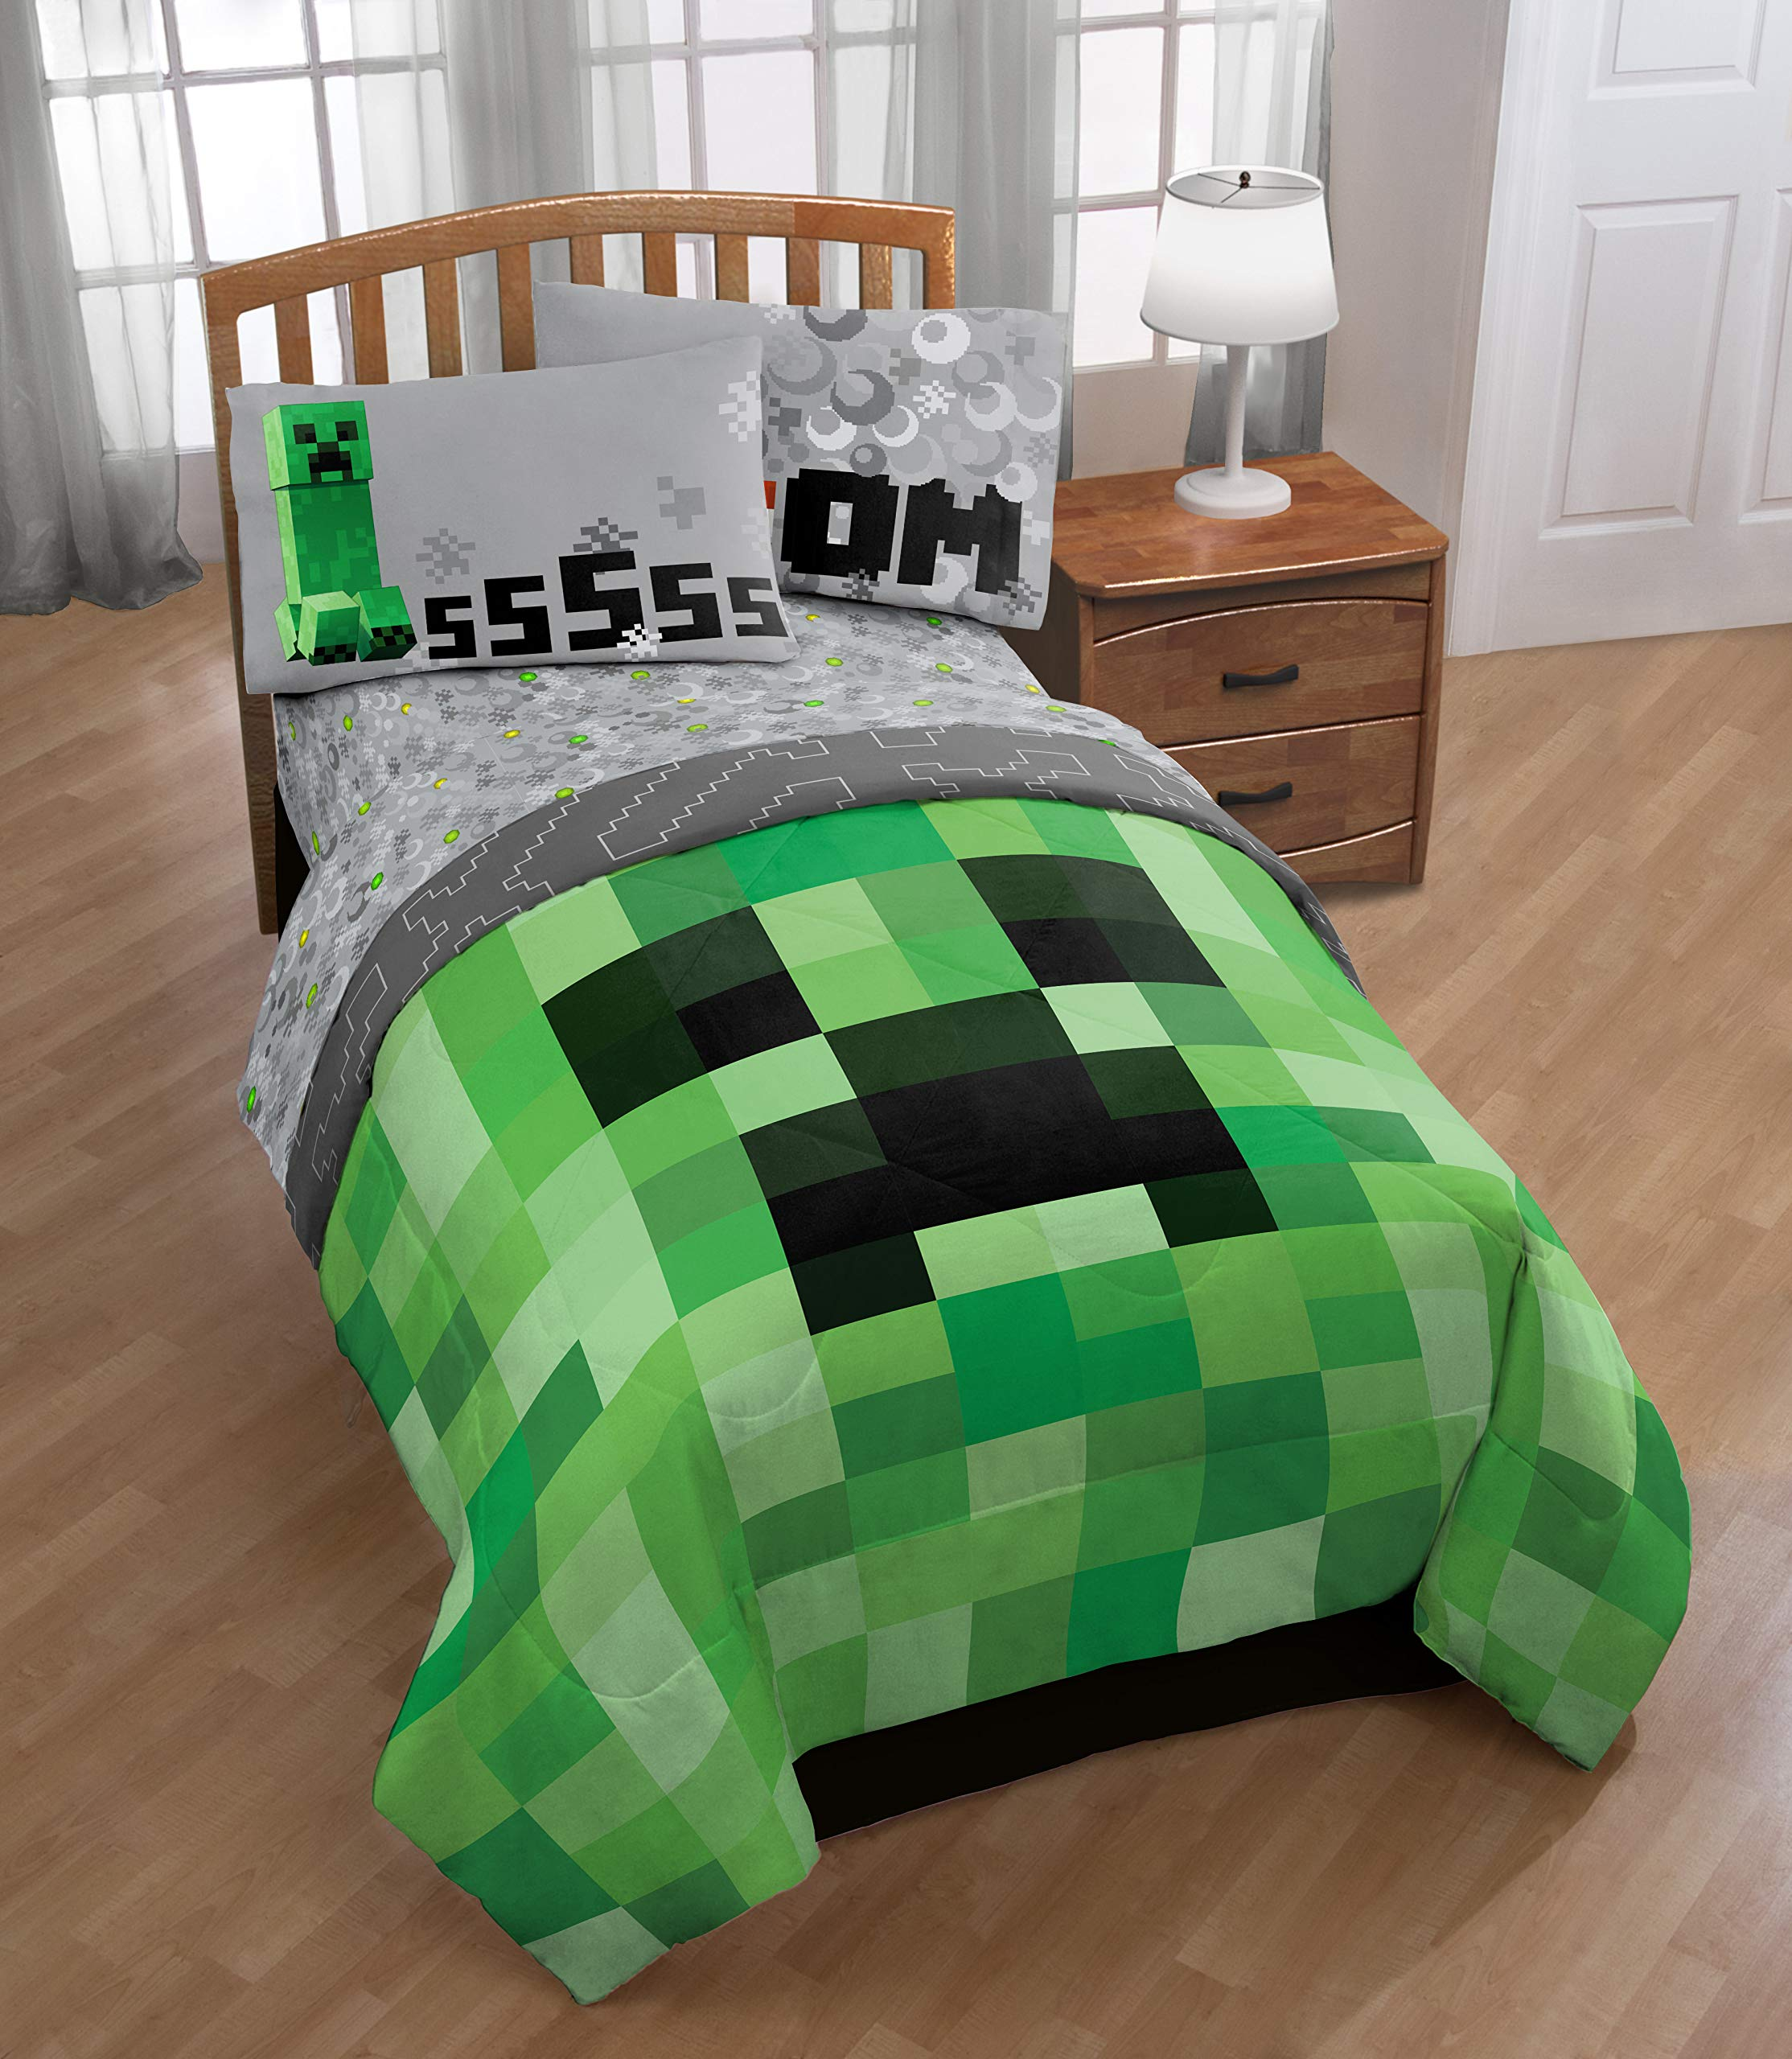 Jay Franco Minecraft Creeper 5 Piece Full Bed Set - Includes Reversible Comforter & Sheet Set - Super Soft Fade Resistant Microfiber - (Official Minecraft Product) by Jay Franco (Image #6)